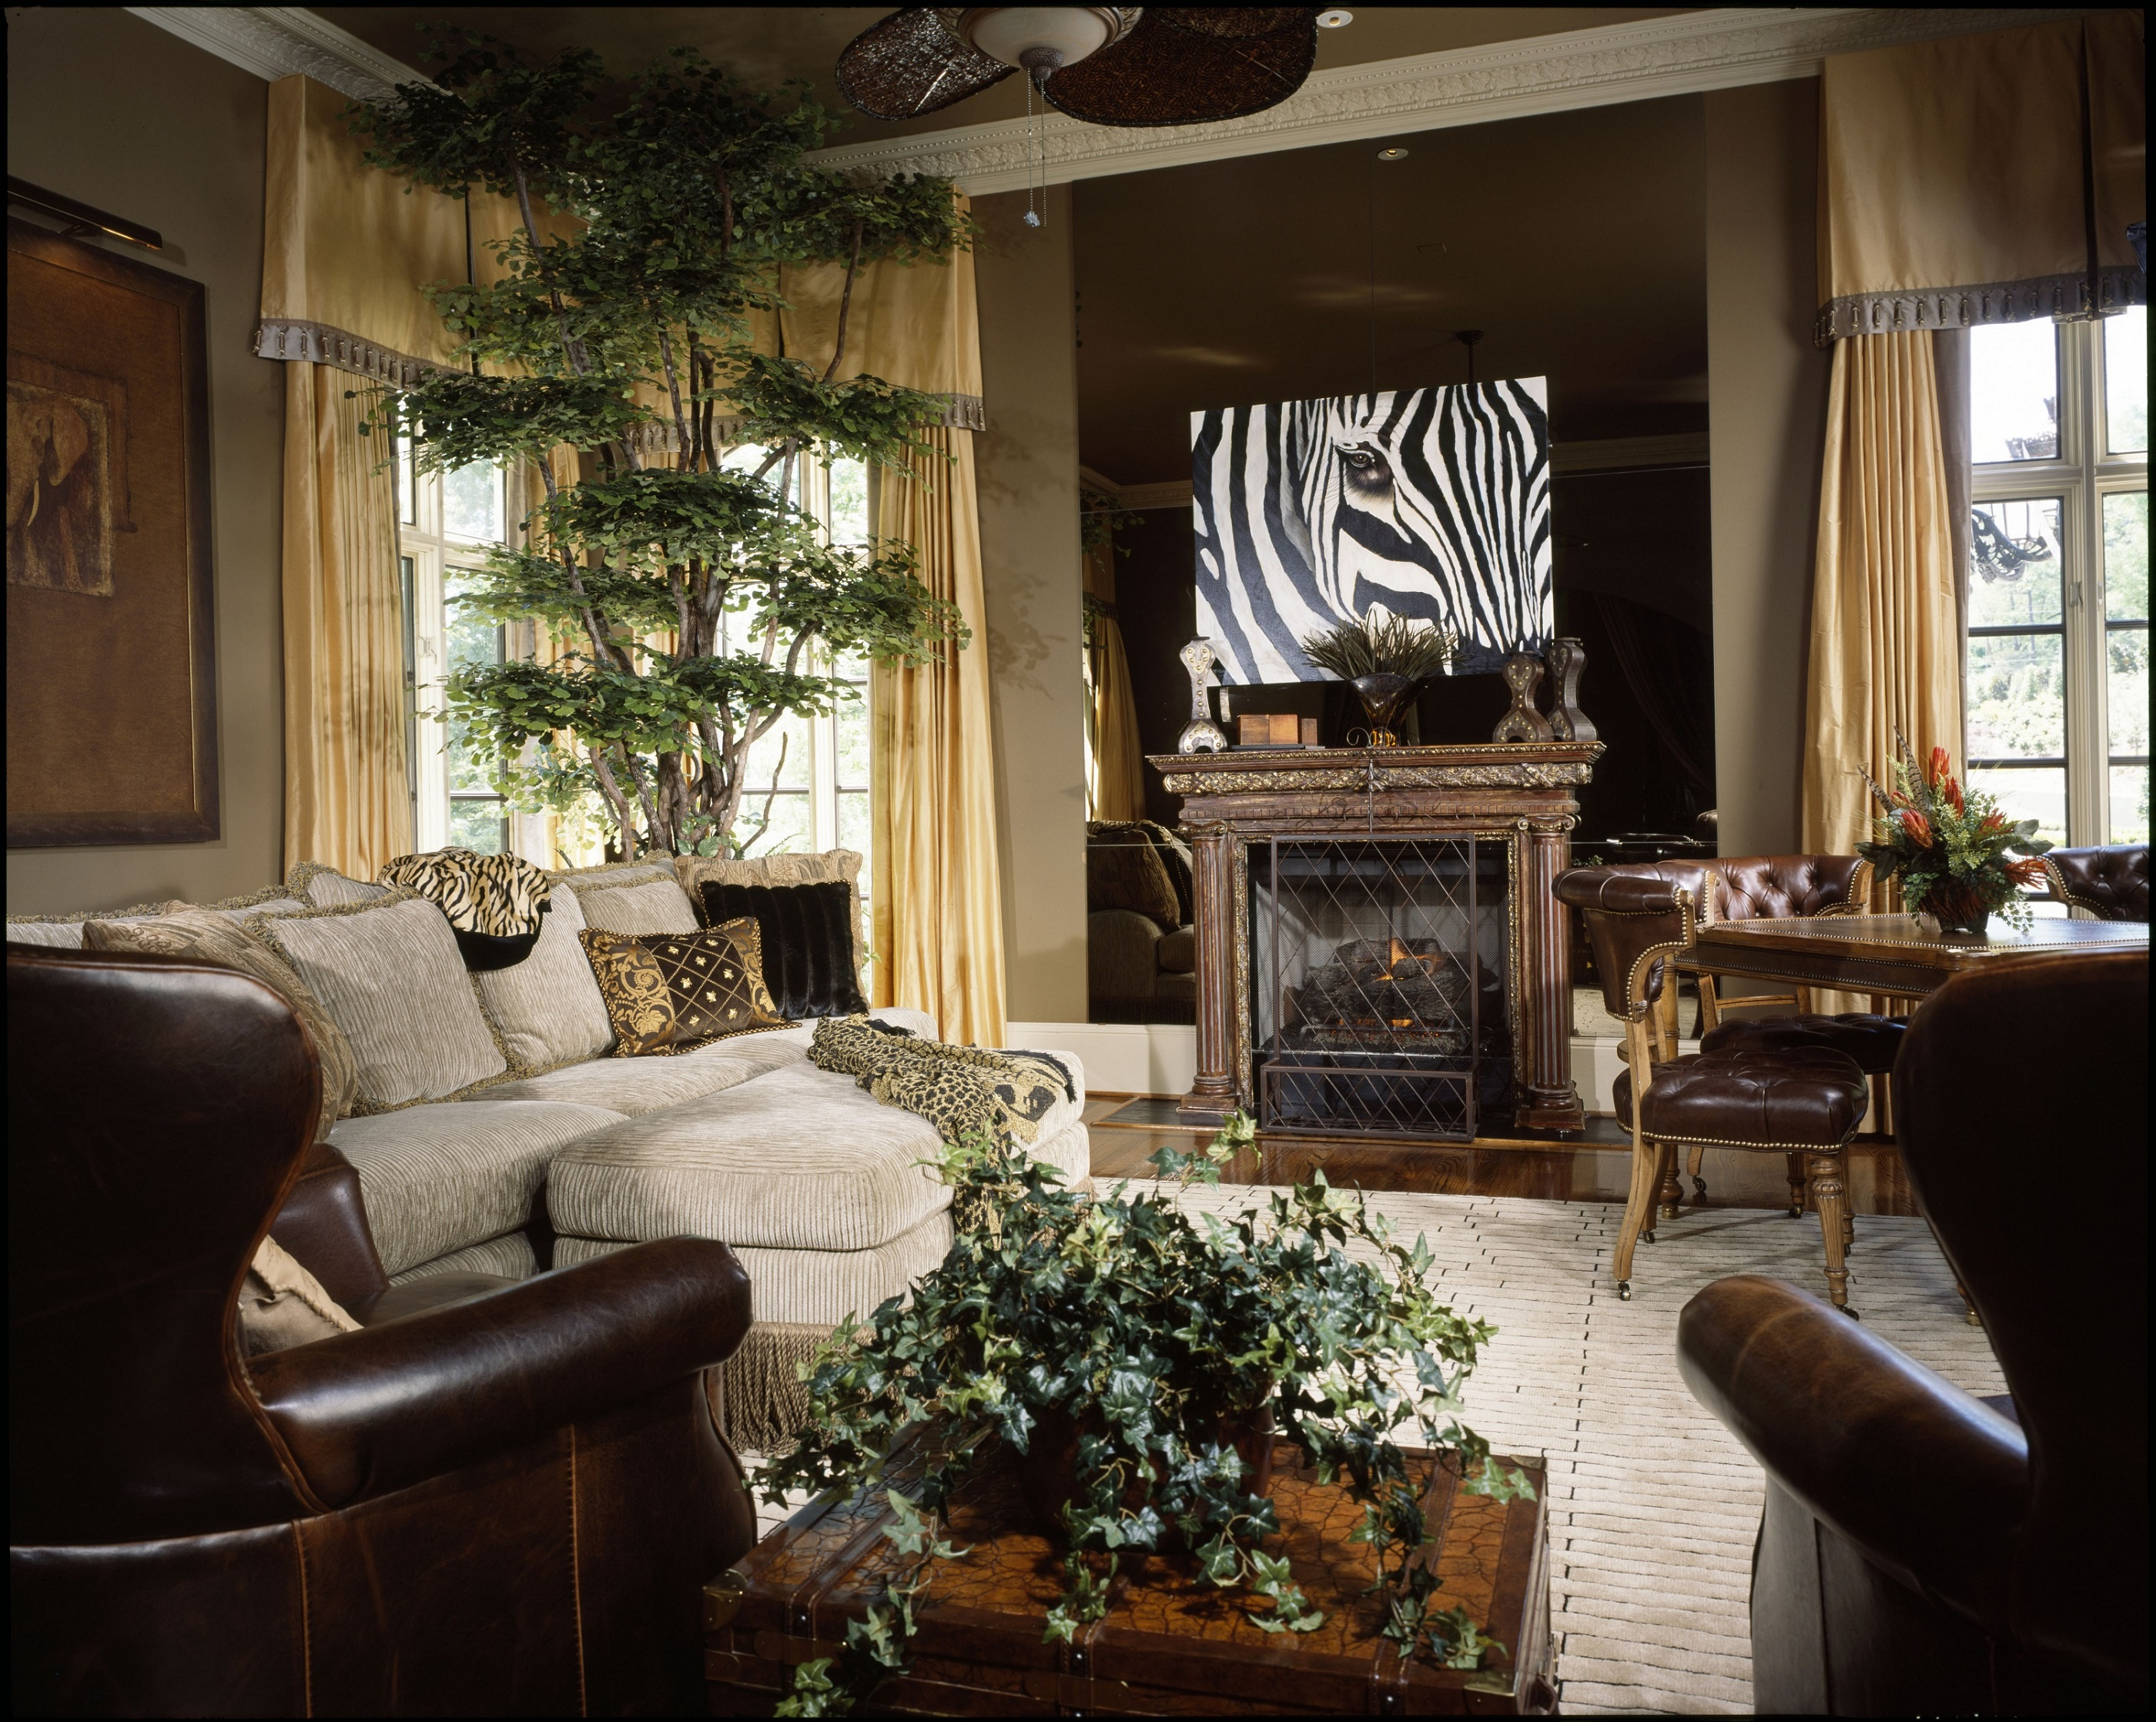 Jim-Weinberg-Living-Room-Interior-Design-Georgia (2)